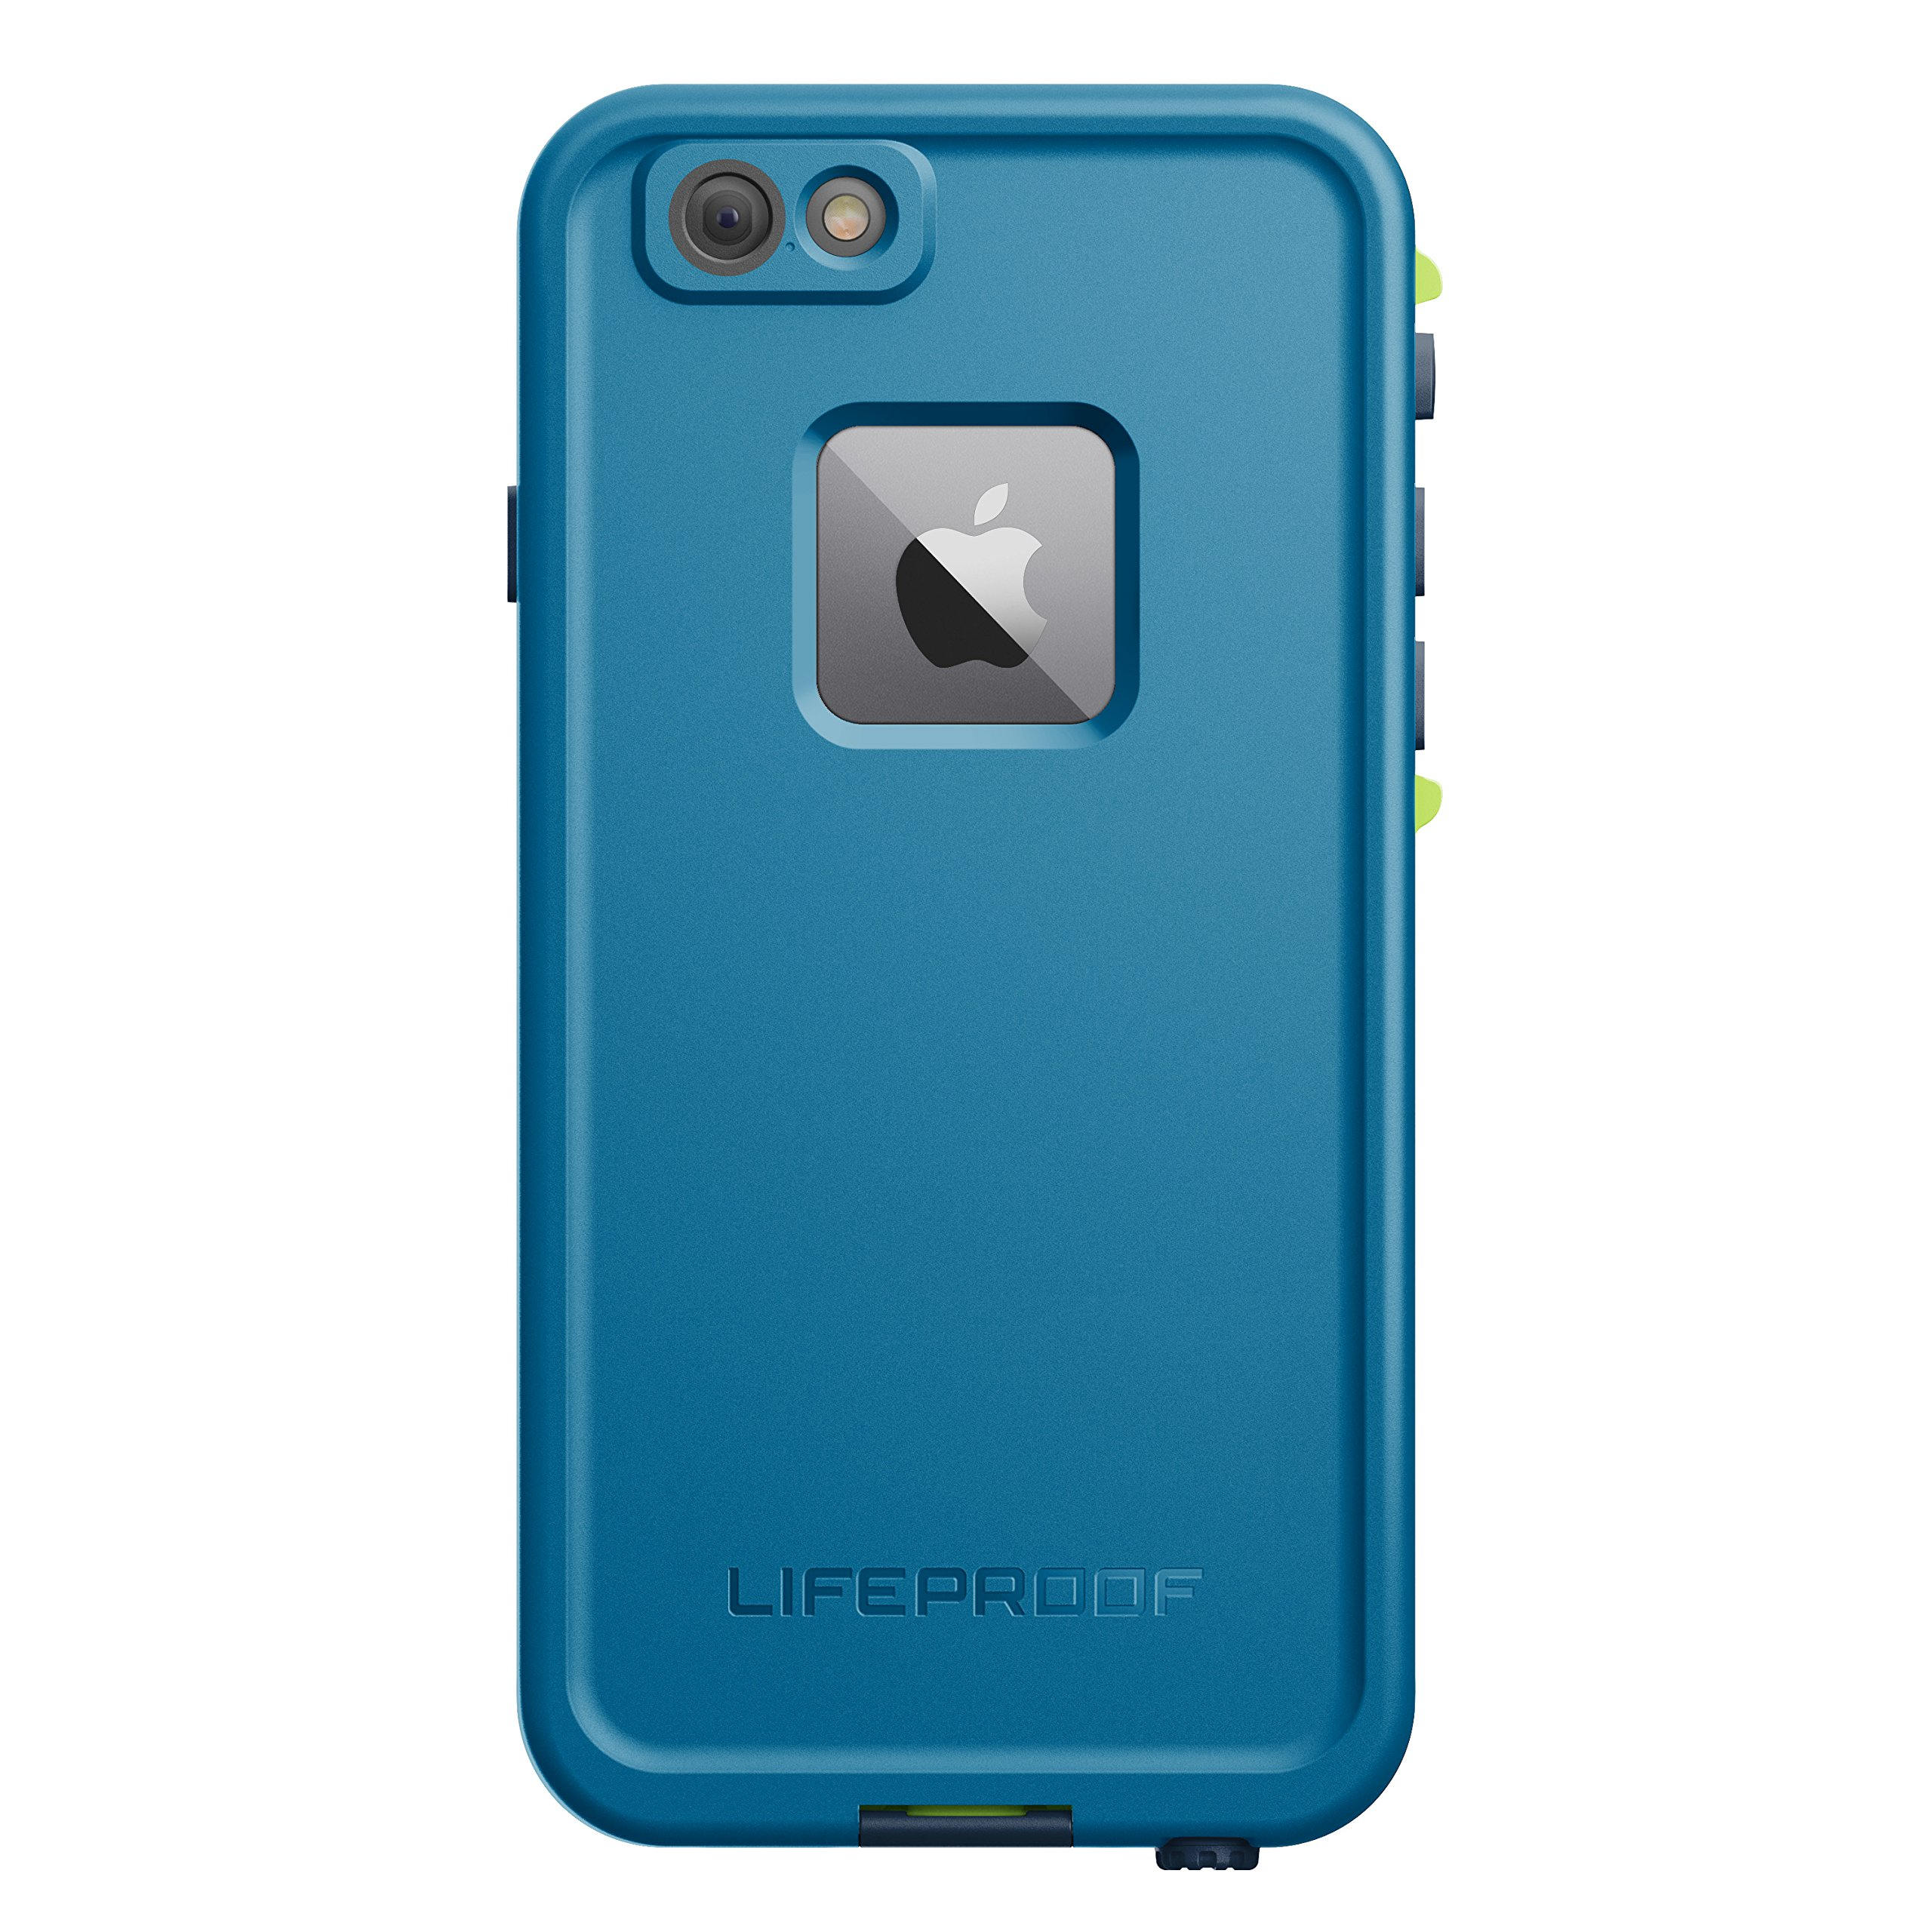 Lifeproof FRĒ SERIES iPhone 6/6s Waterproof Case (4.7'' Version) - Retail Packaging - BANZAI (COWABUNGA/WAVE CRASH/LONGBOARD) by LifeProof